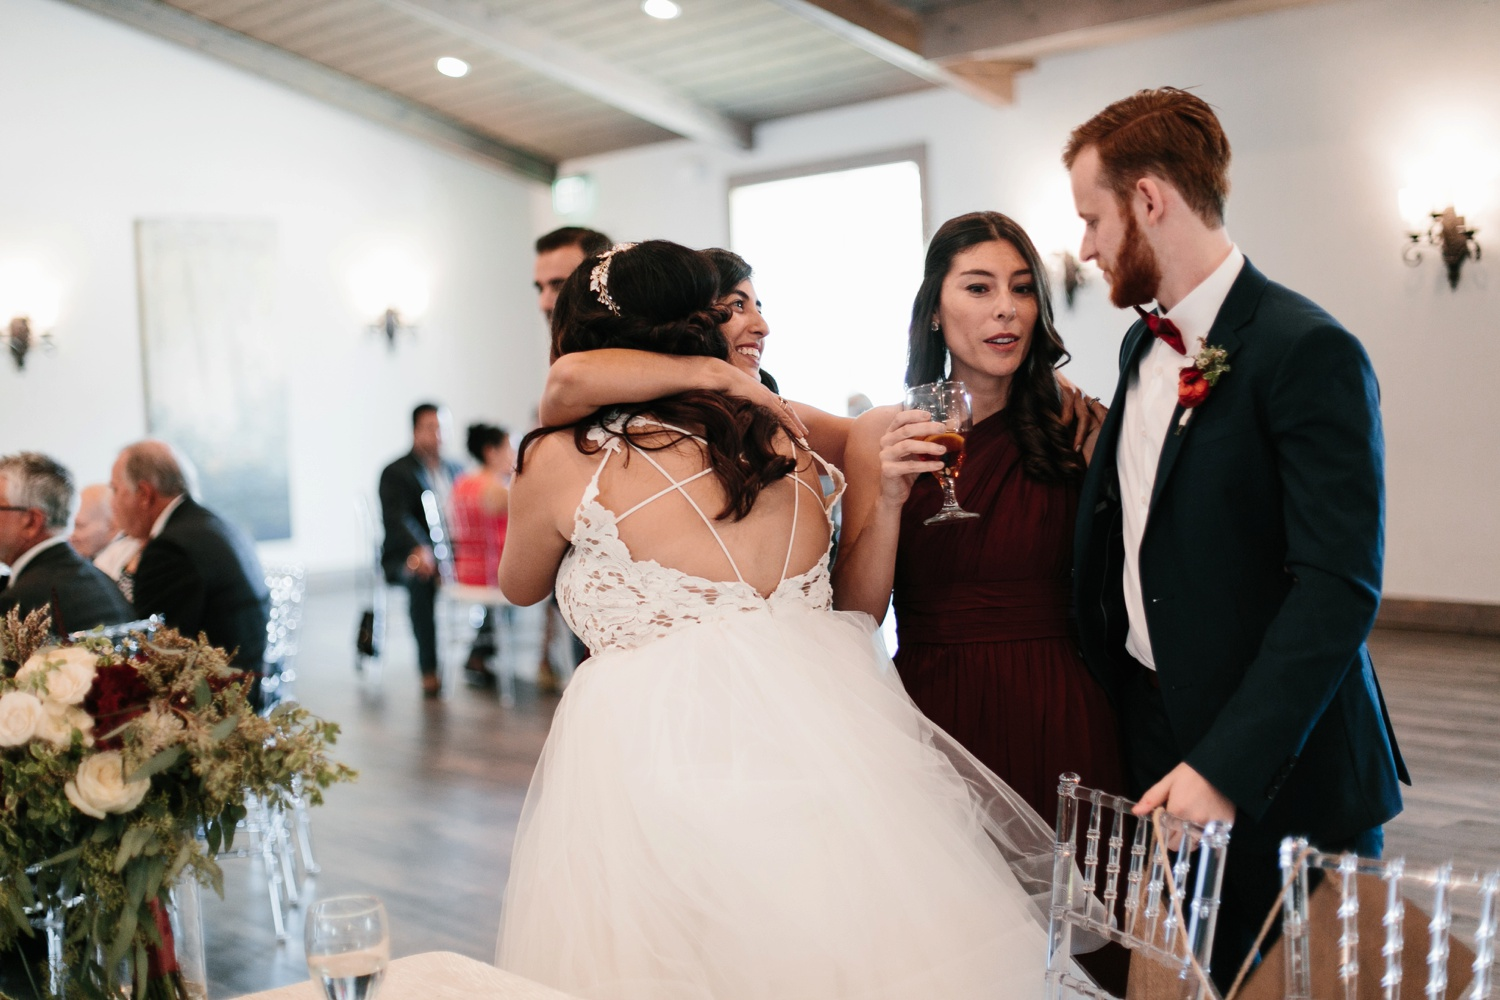 Grant + Lysette | a vibrant, deep burgundy and navy, and mixed metals wedding at Hidden Pines Chapel by North Texas Wedding Photographer Rachel Meagan Photography 155